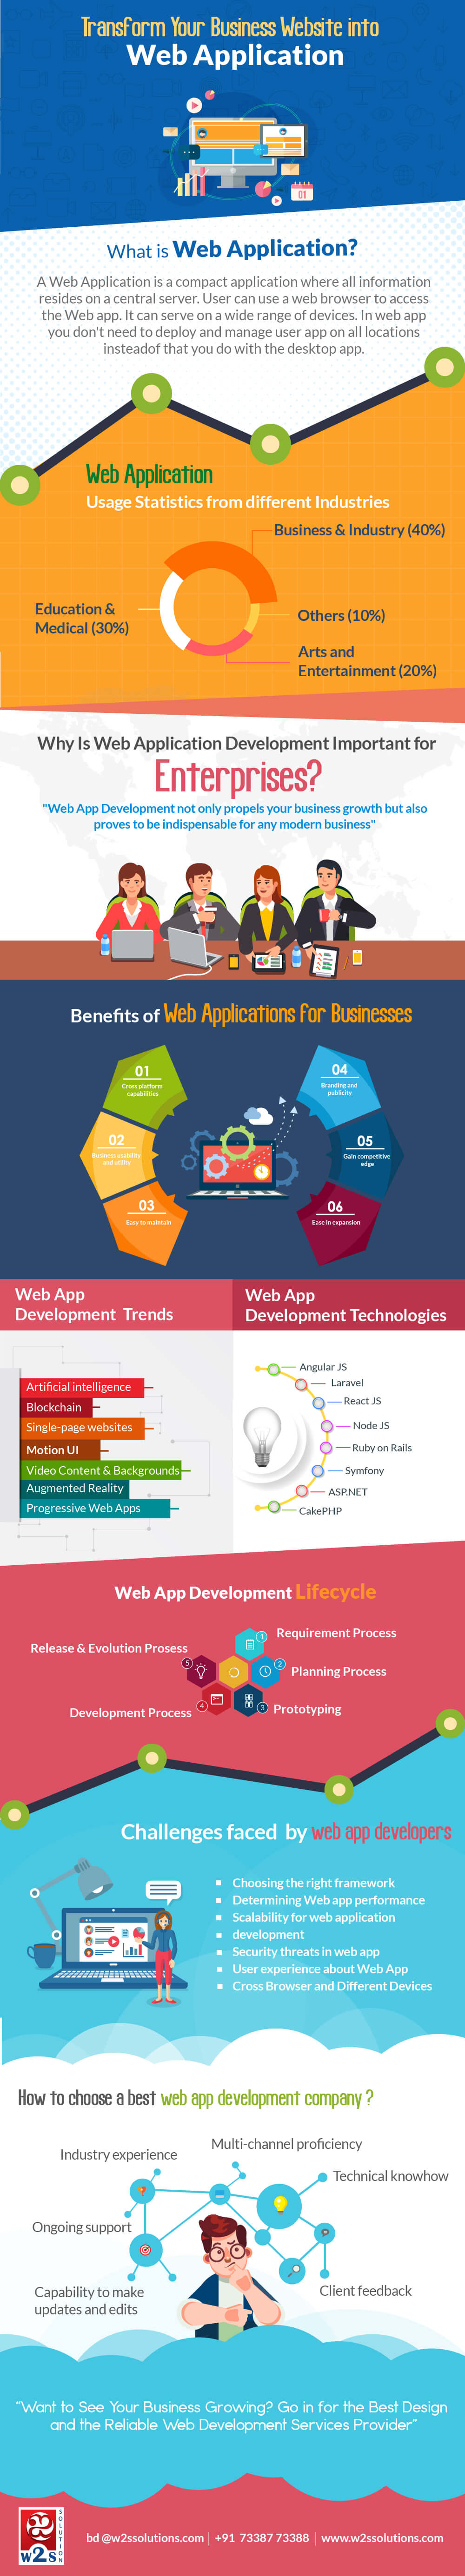 Transform-business-website-to-webapp-infographic-plaza